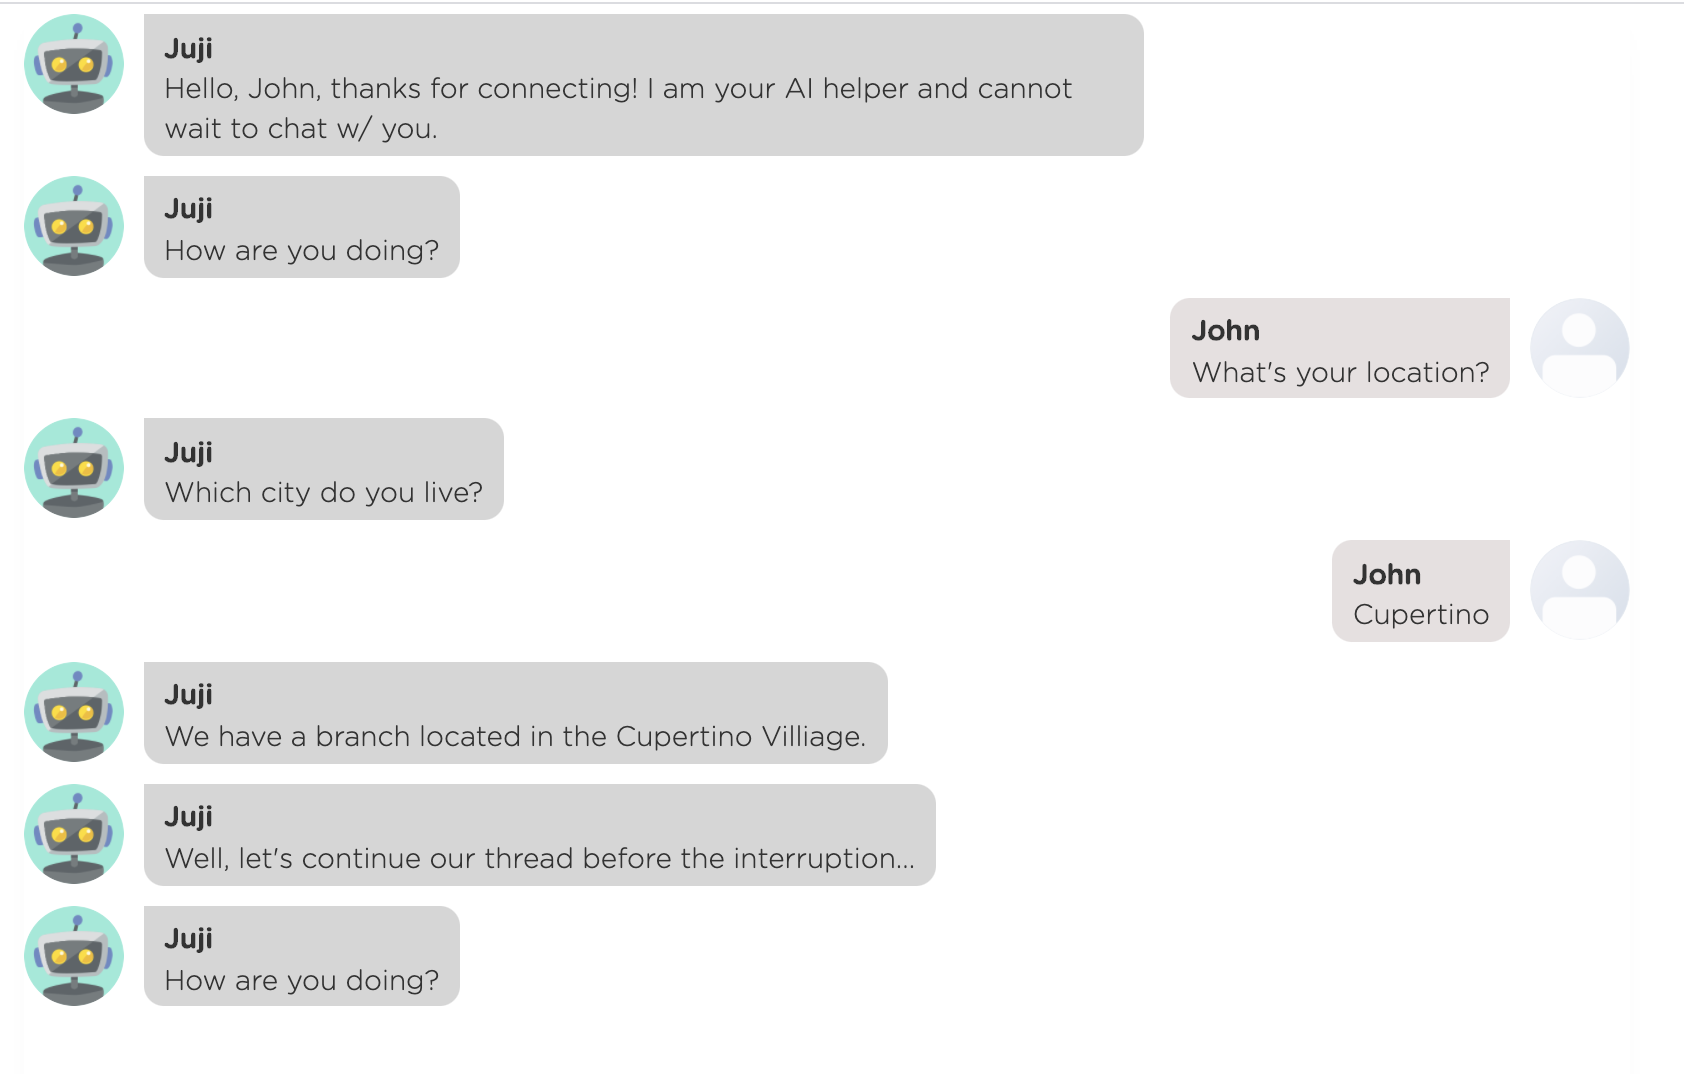 Another example of the chatbot providing the nearest branch's location with respect to the user's location